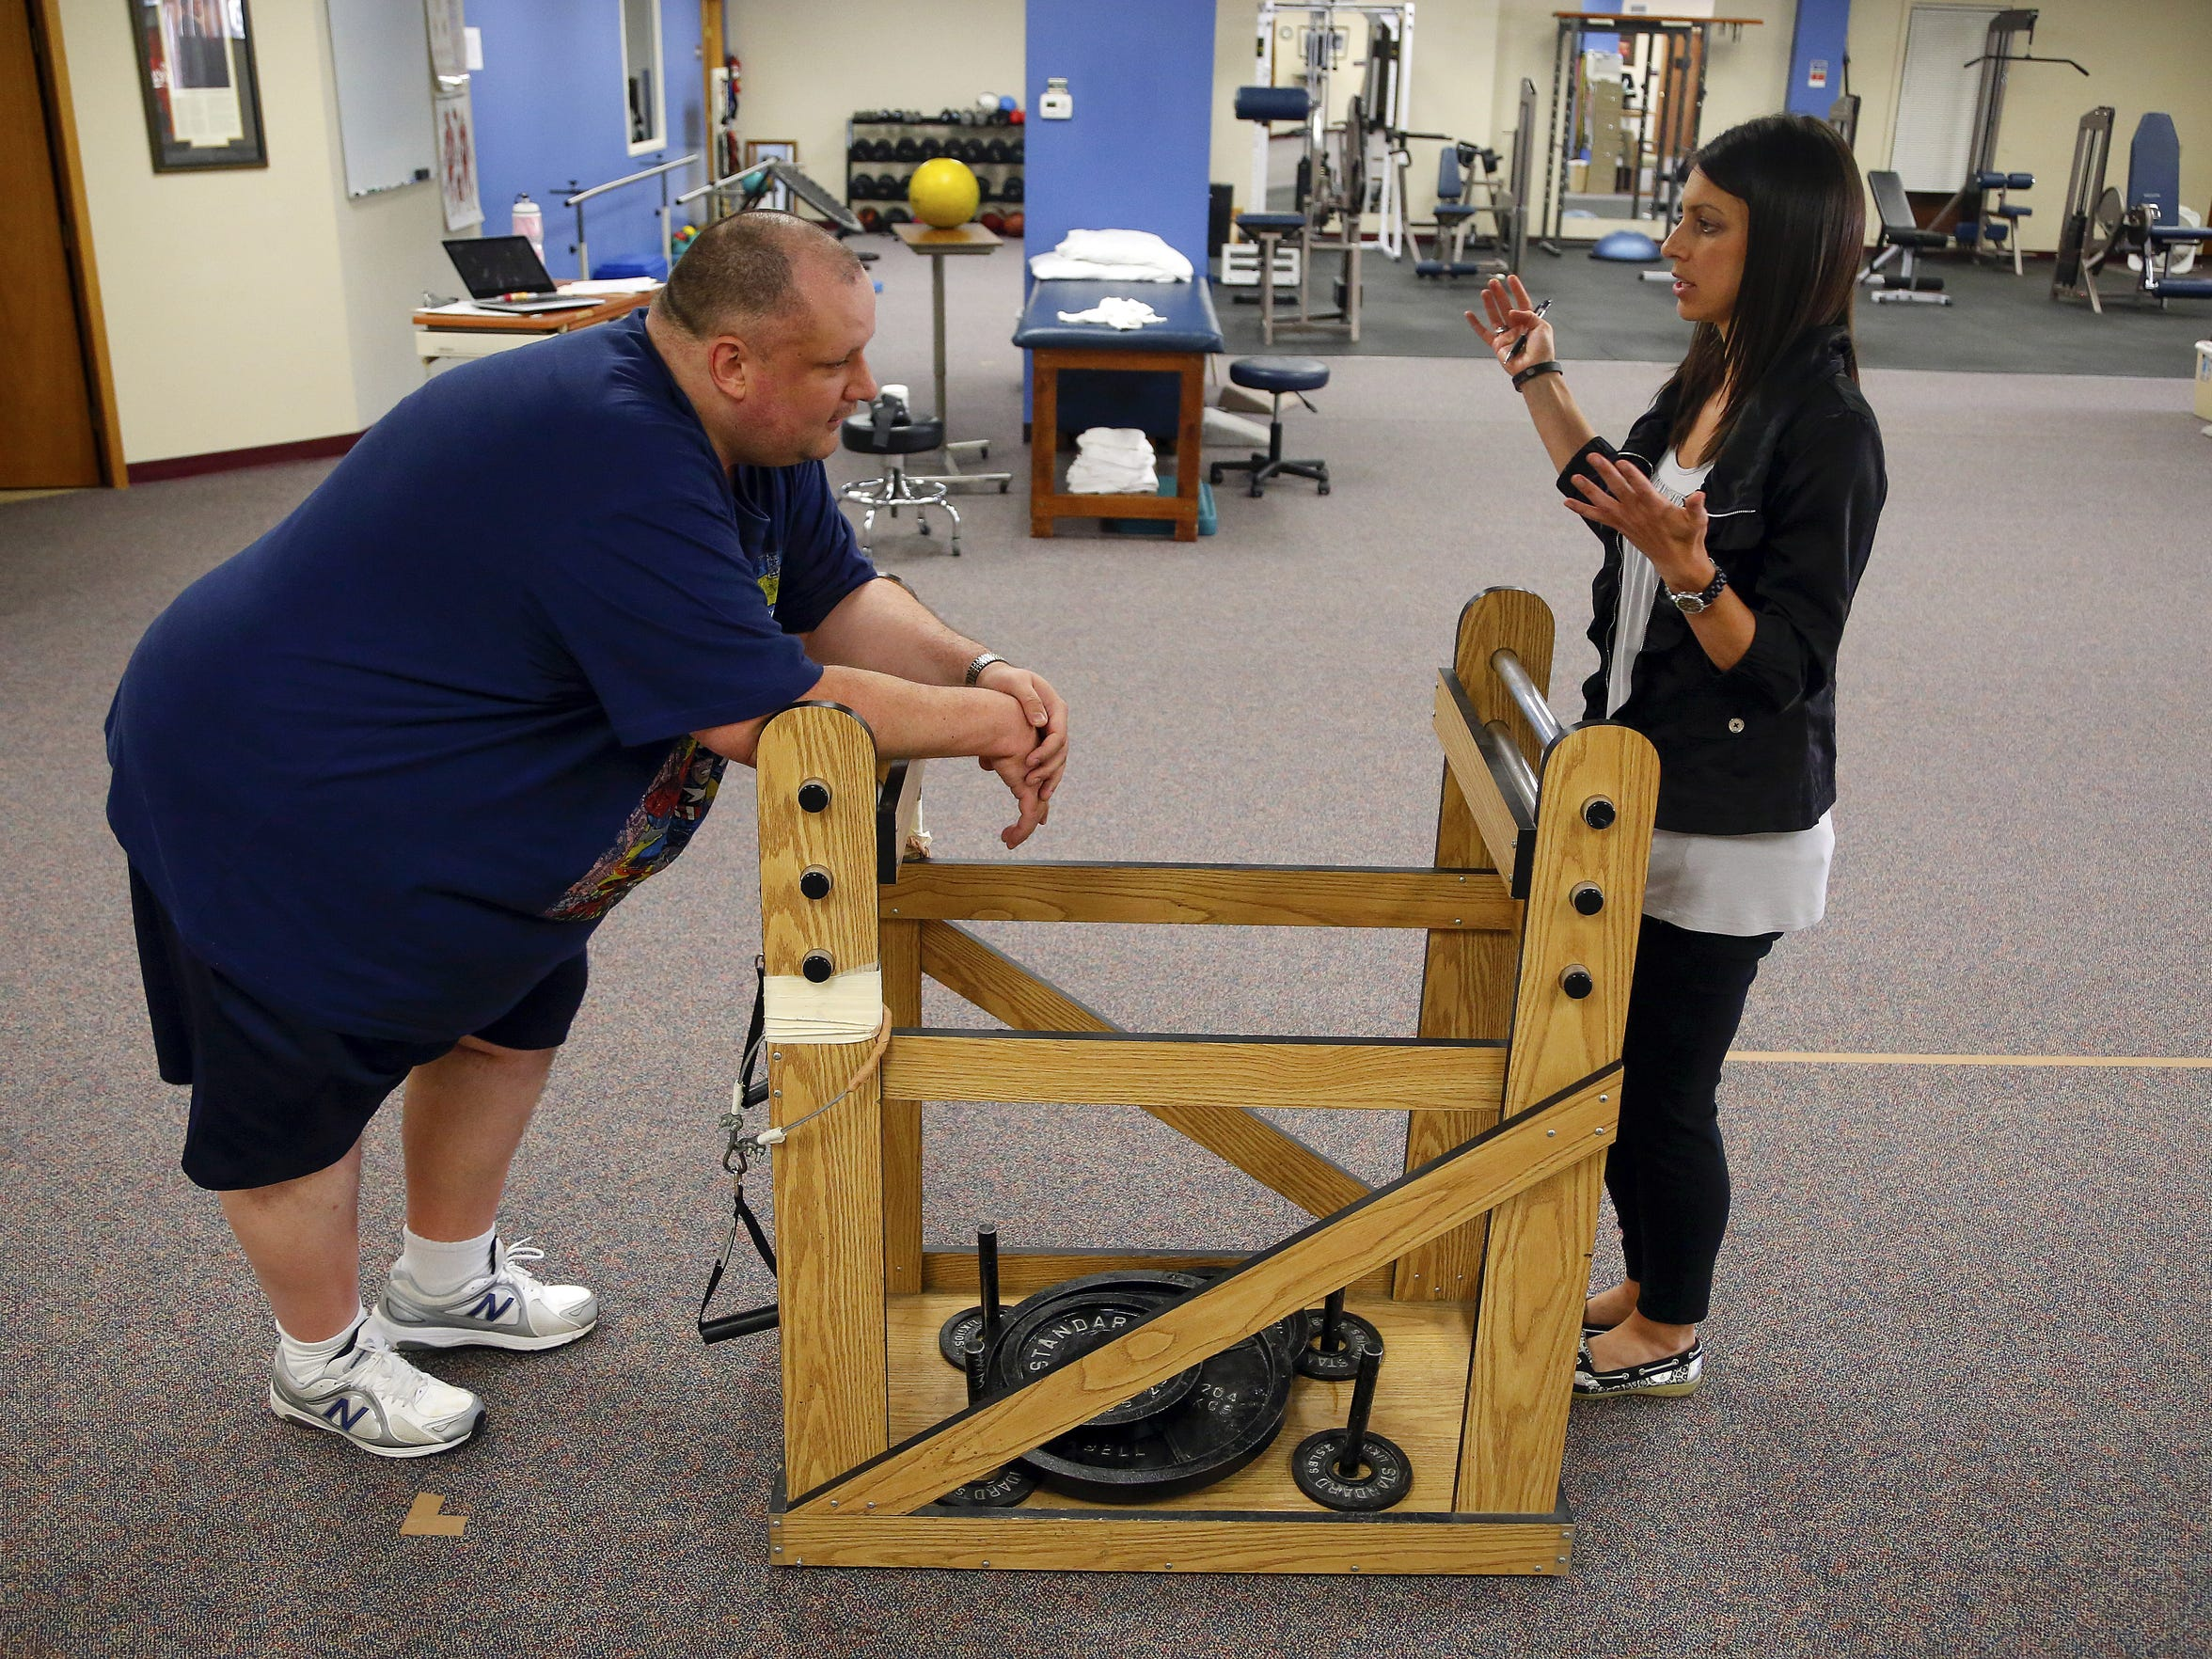 Physical Therapist Stefanie Kirk works with Register Columnist Daniel Finney Tuesday, June 16, 2015.